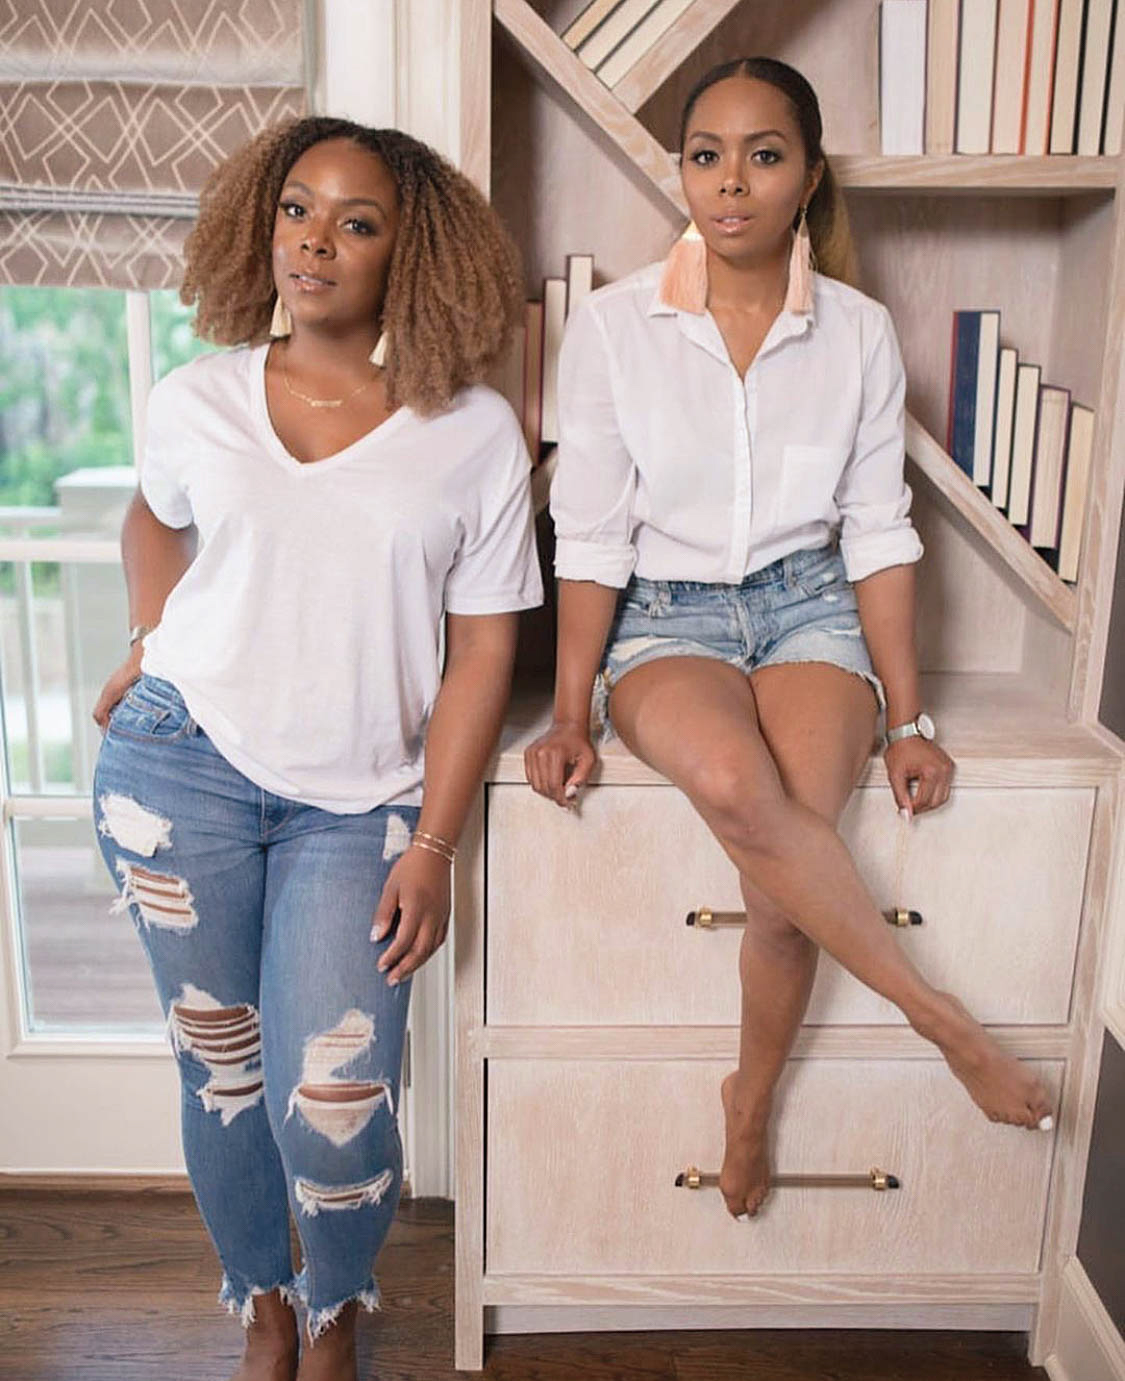 two designers wearing white shirts and jeans